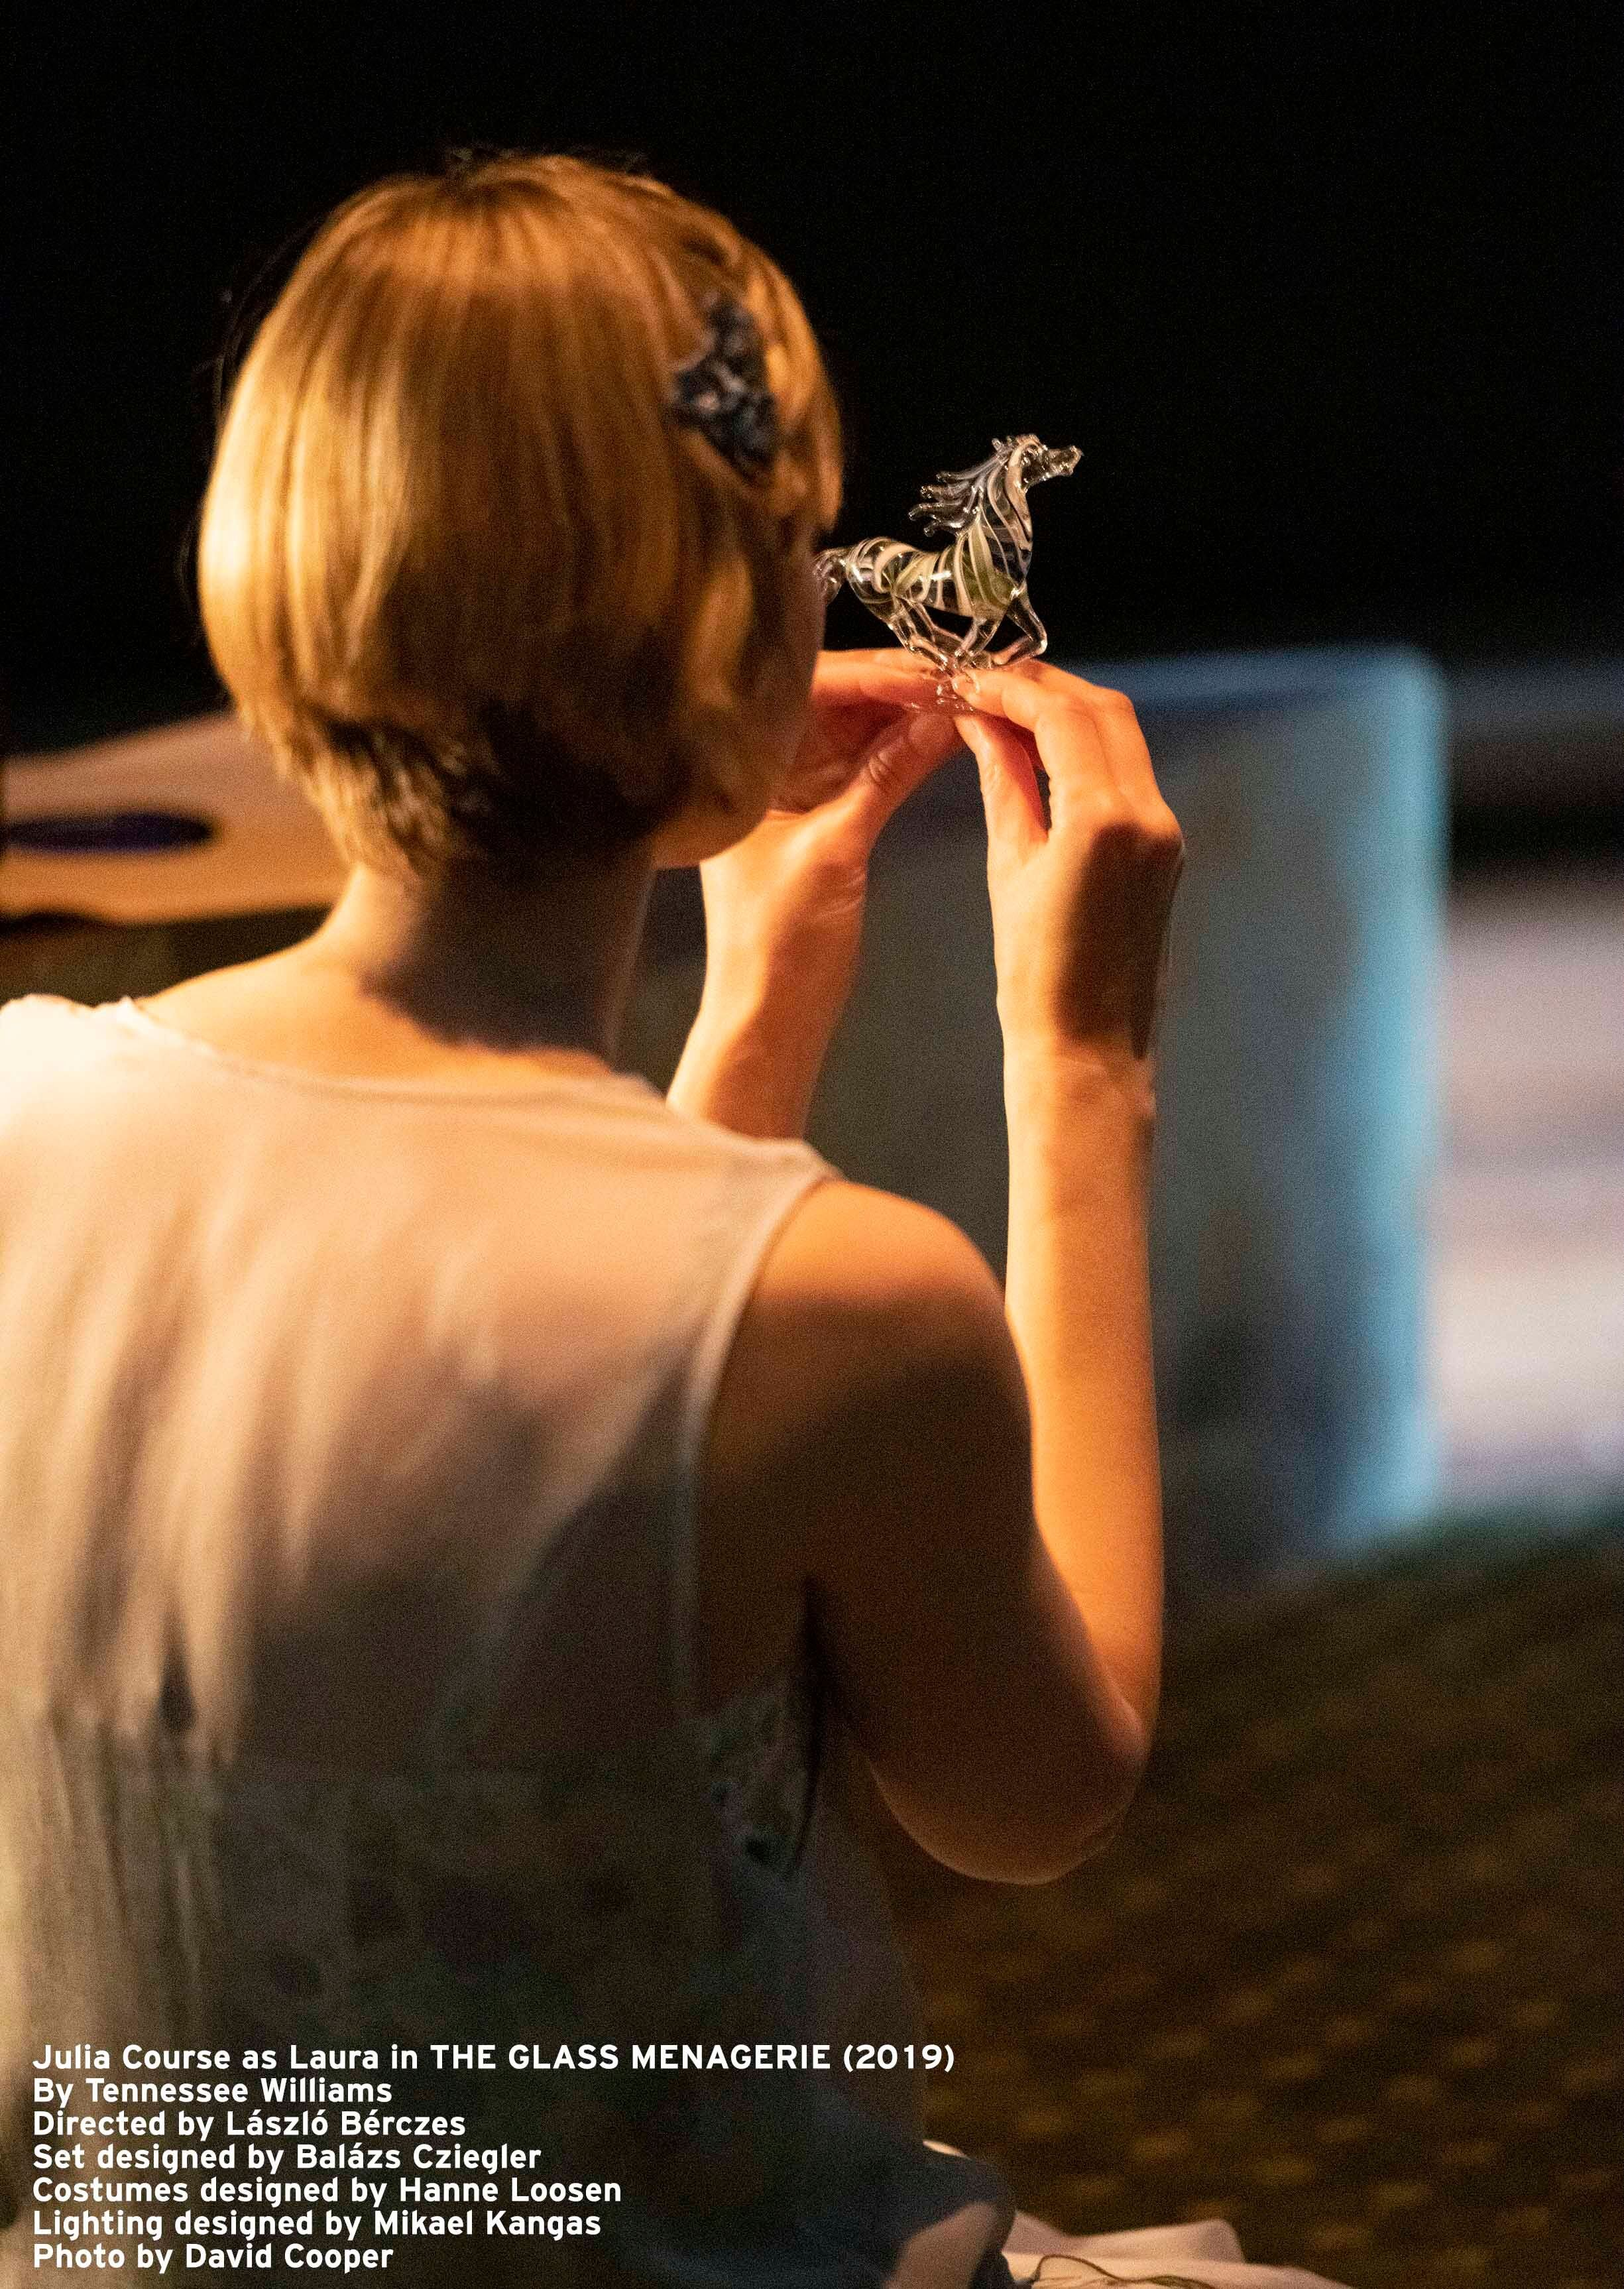 Julia Course As Laura In The Glass Menagerie 2019